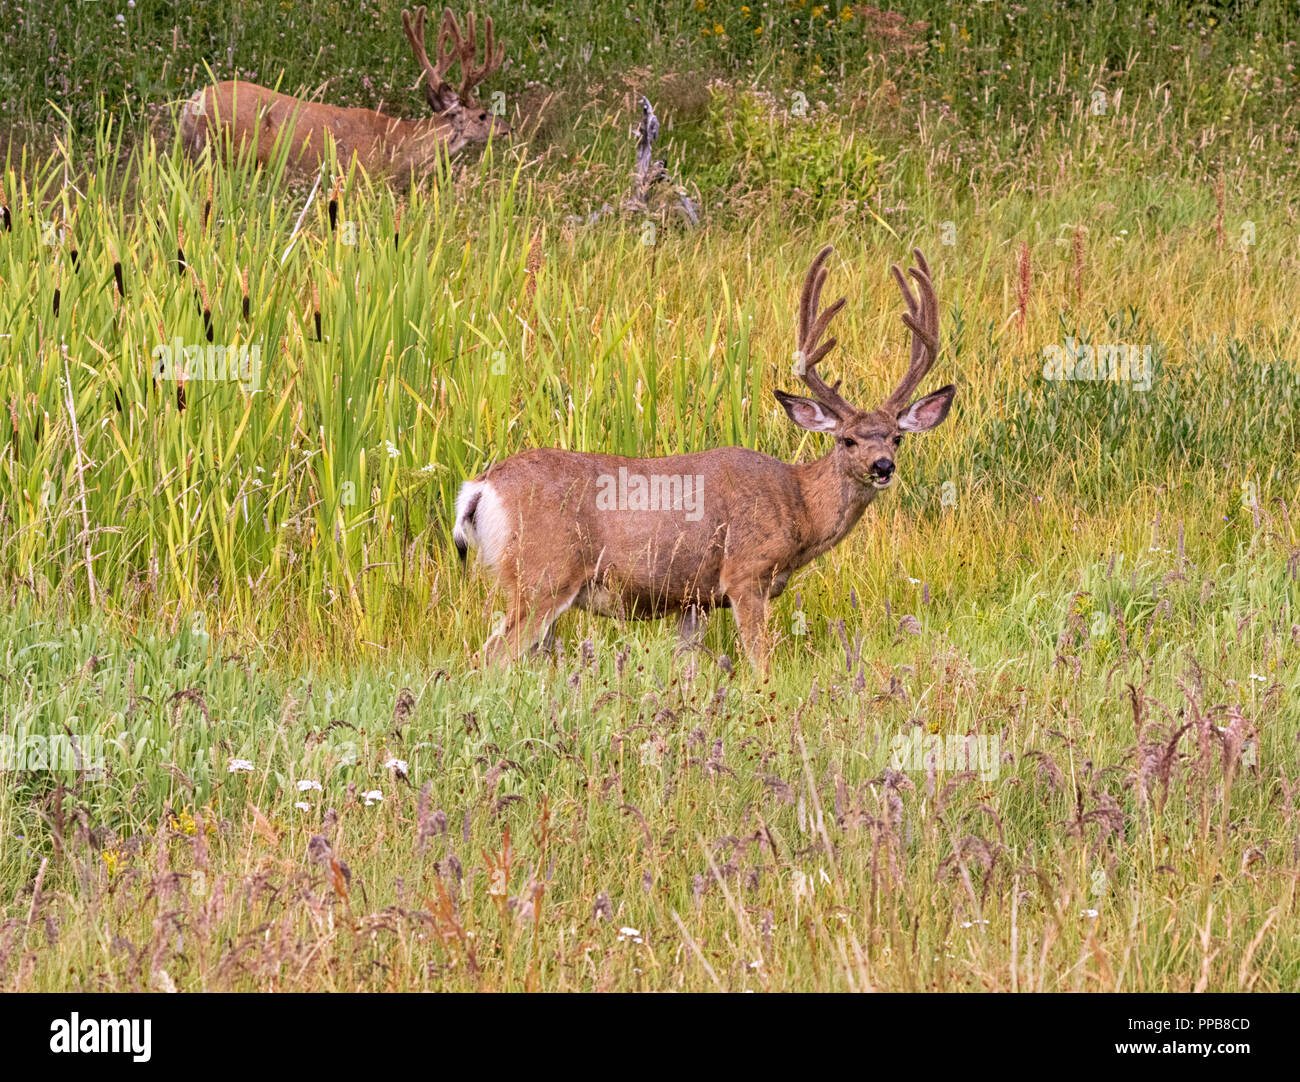 Mule deer bucks feeding in tall grass at Yellowstone National Park - Stock Image